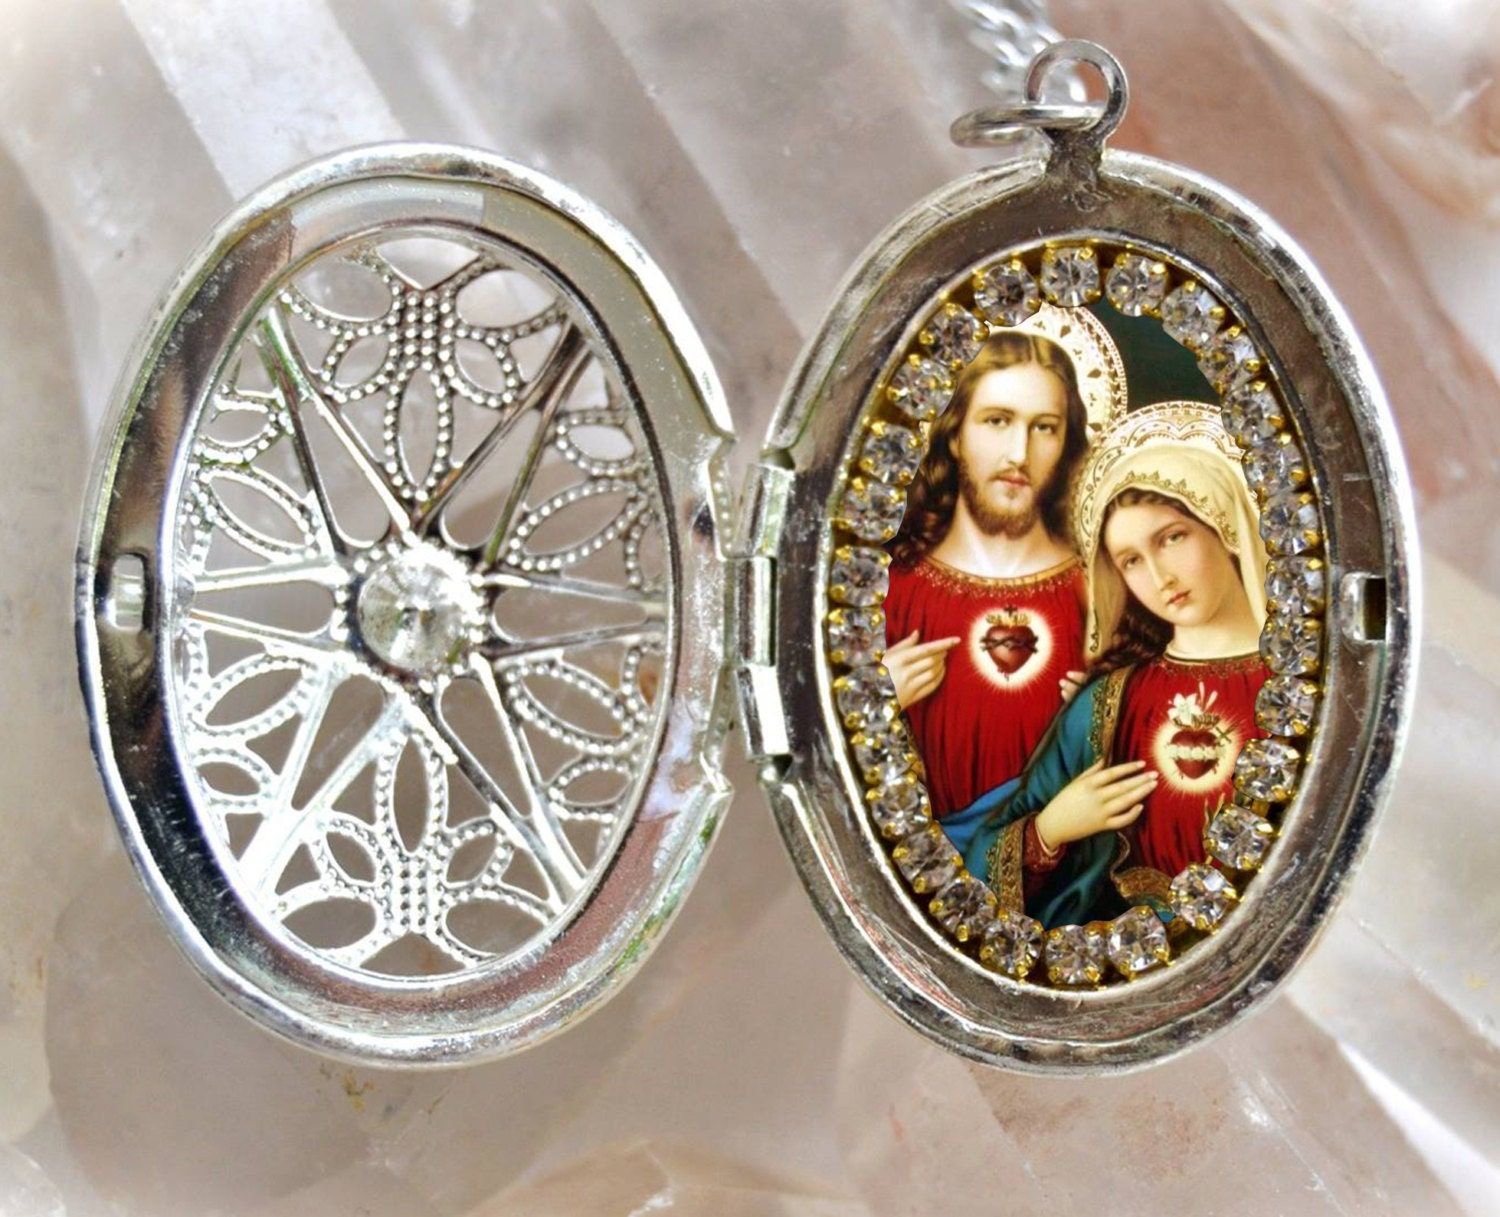 Immaculate heart of mary and sacred heart of jesus locket handmade immaculate heart of mary and sacred heart of jesus locket handmade necklace catholic christian religious jewelry medal pendant aloadofball Images